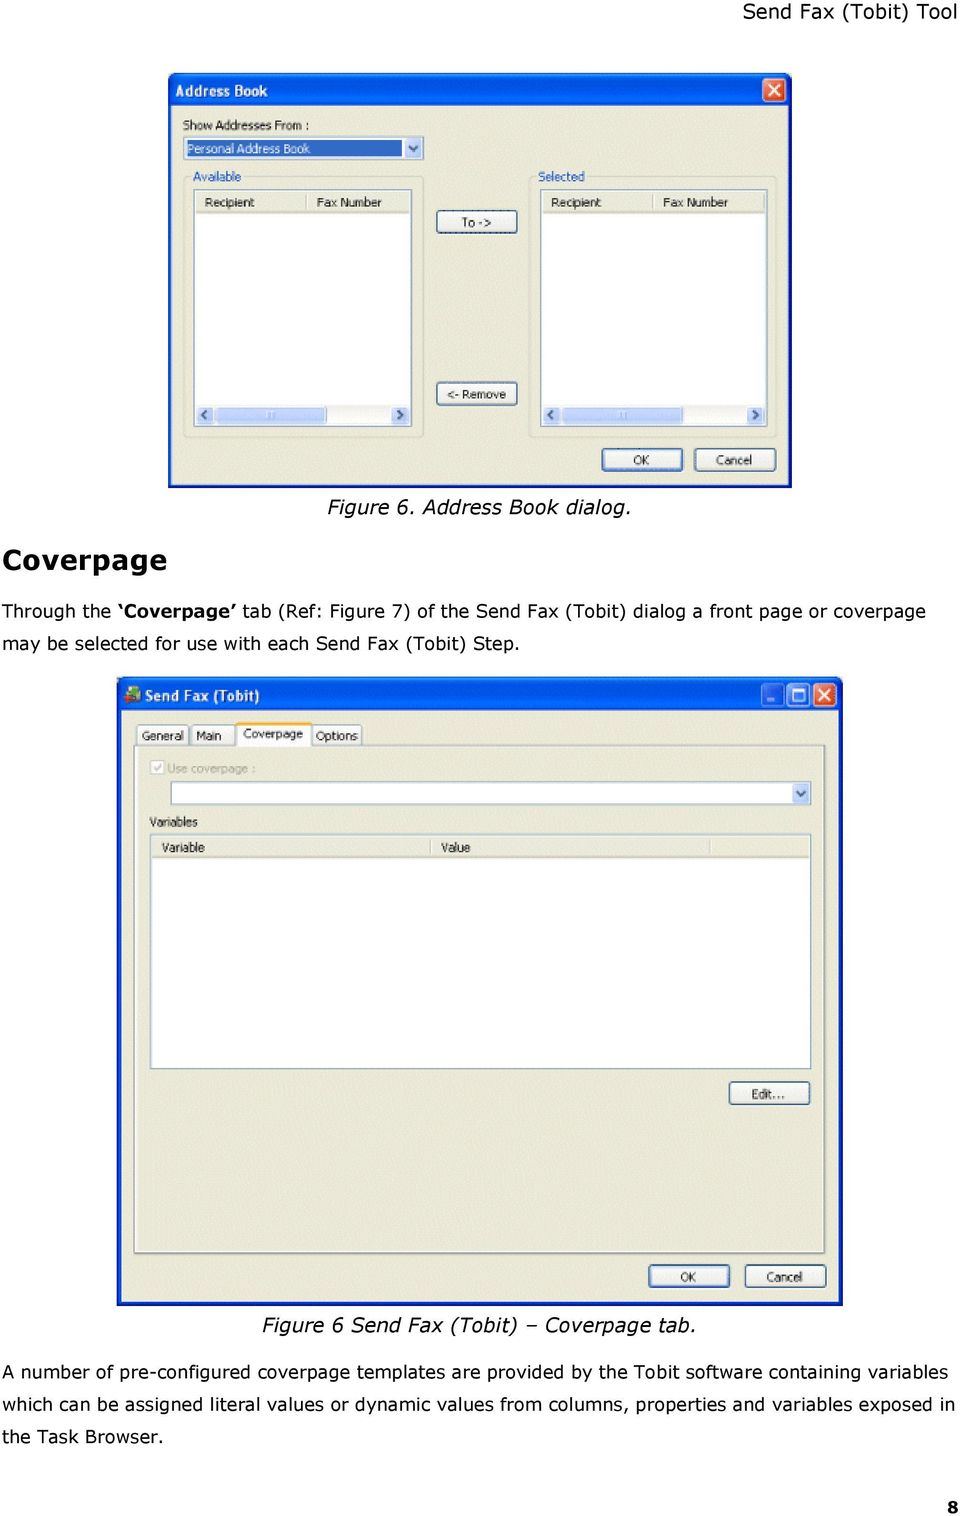 selected fr use with each Send Fax (Tbit) Step. Figure 6 Send Fax (Tbit) Cverpage tab.